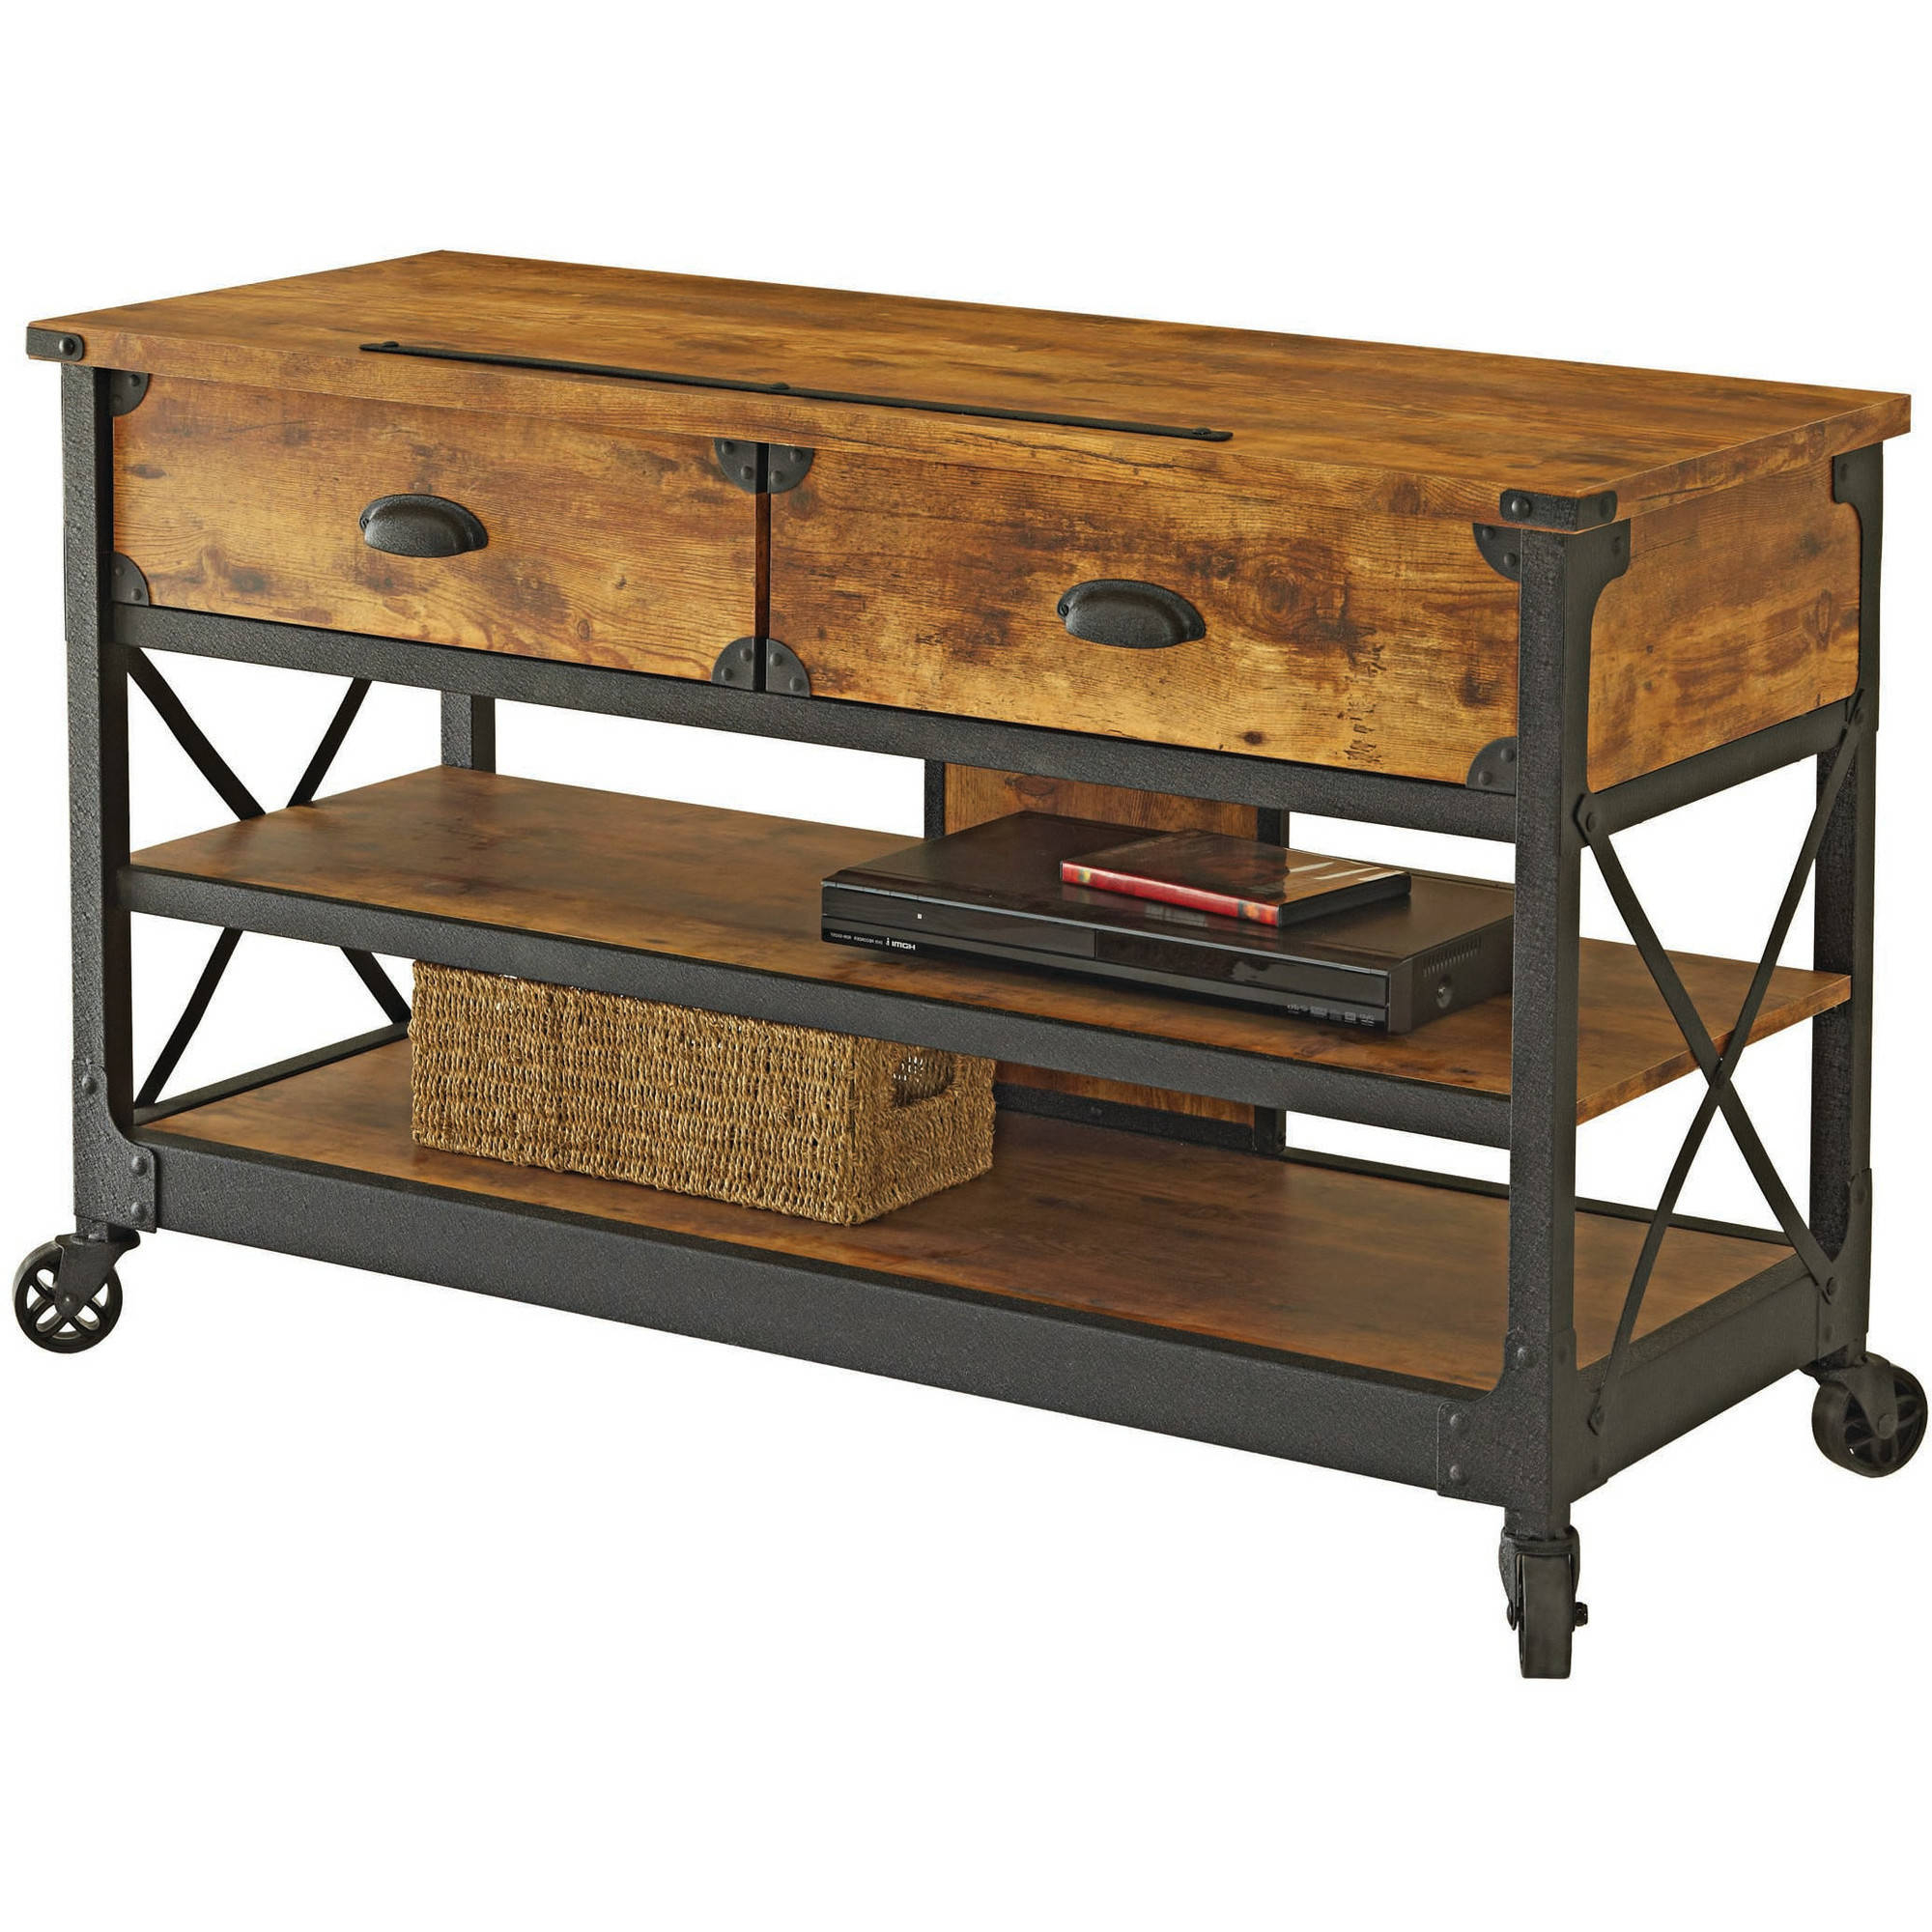 Fashionable Pine Wood Tv Stands In Better Homes & Gardens Rustic Country Tv Stand For Tvs Up To (View 13 of 20)